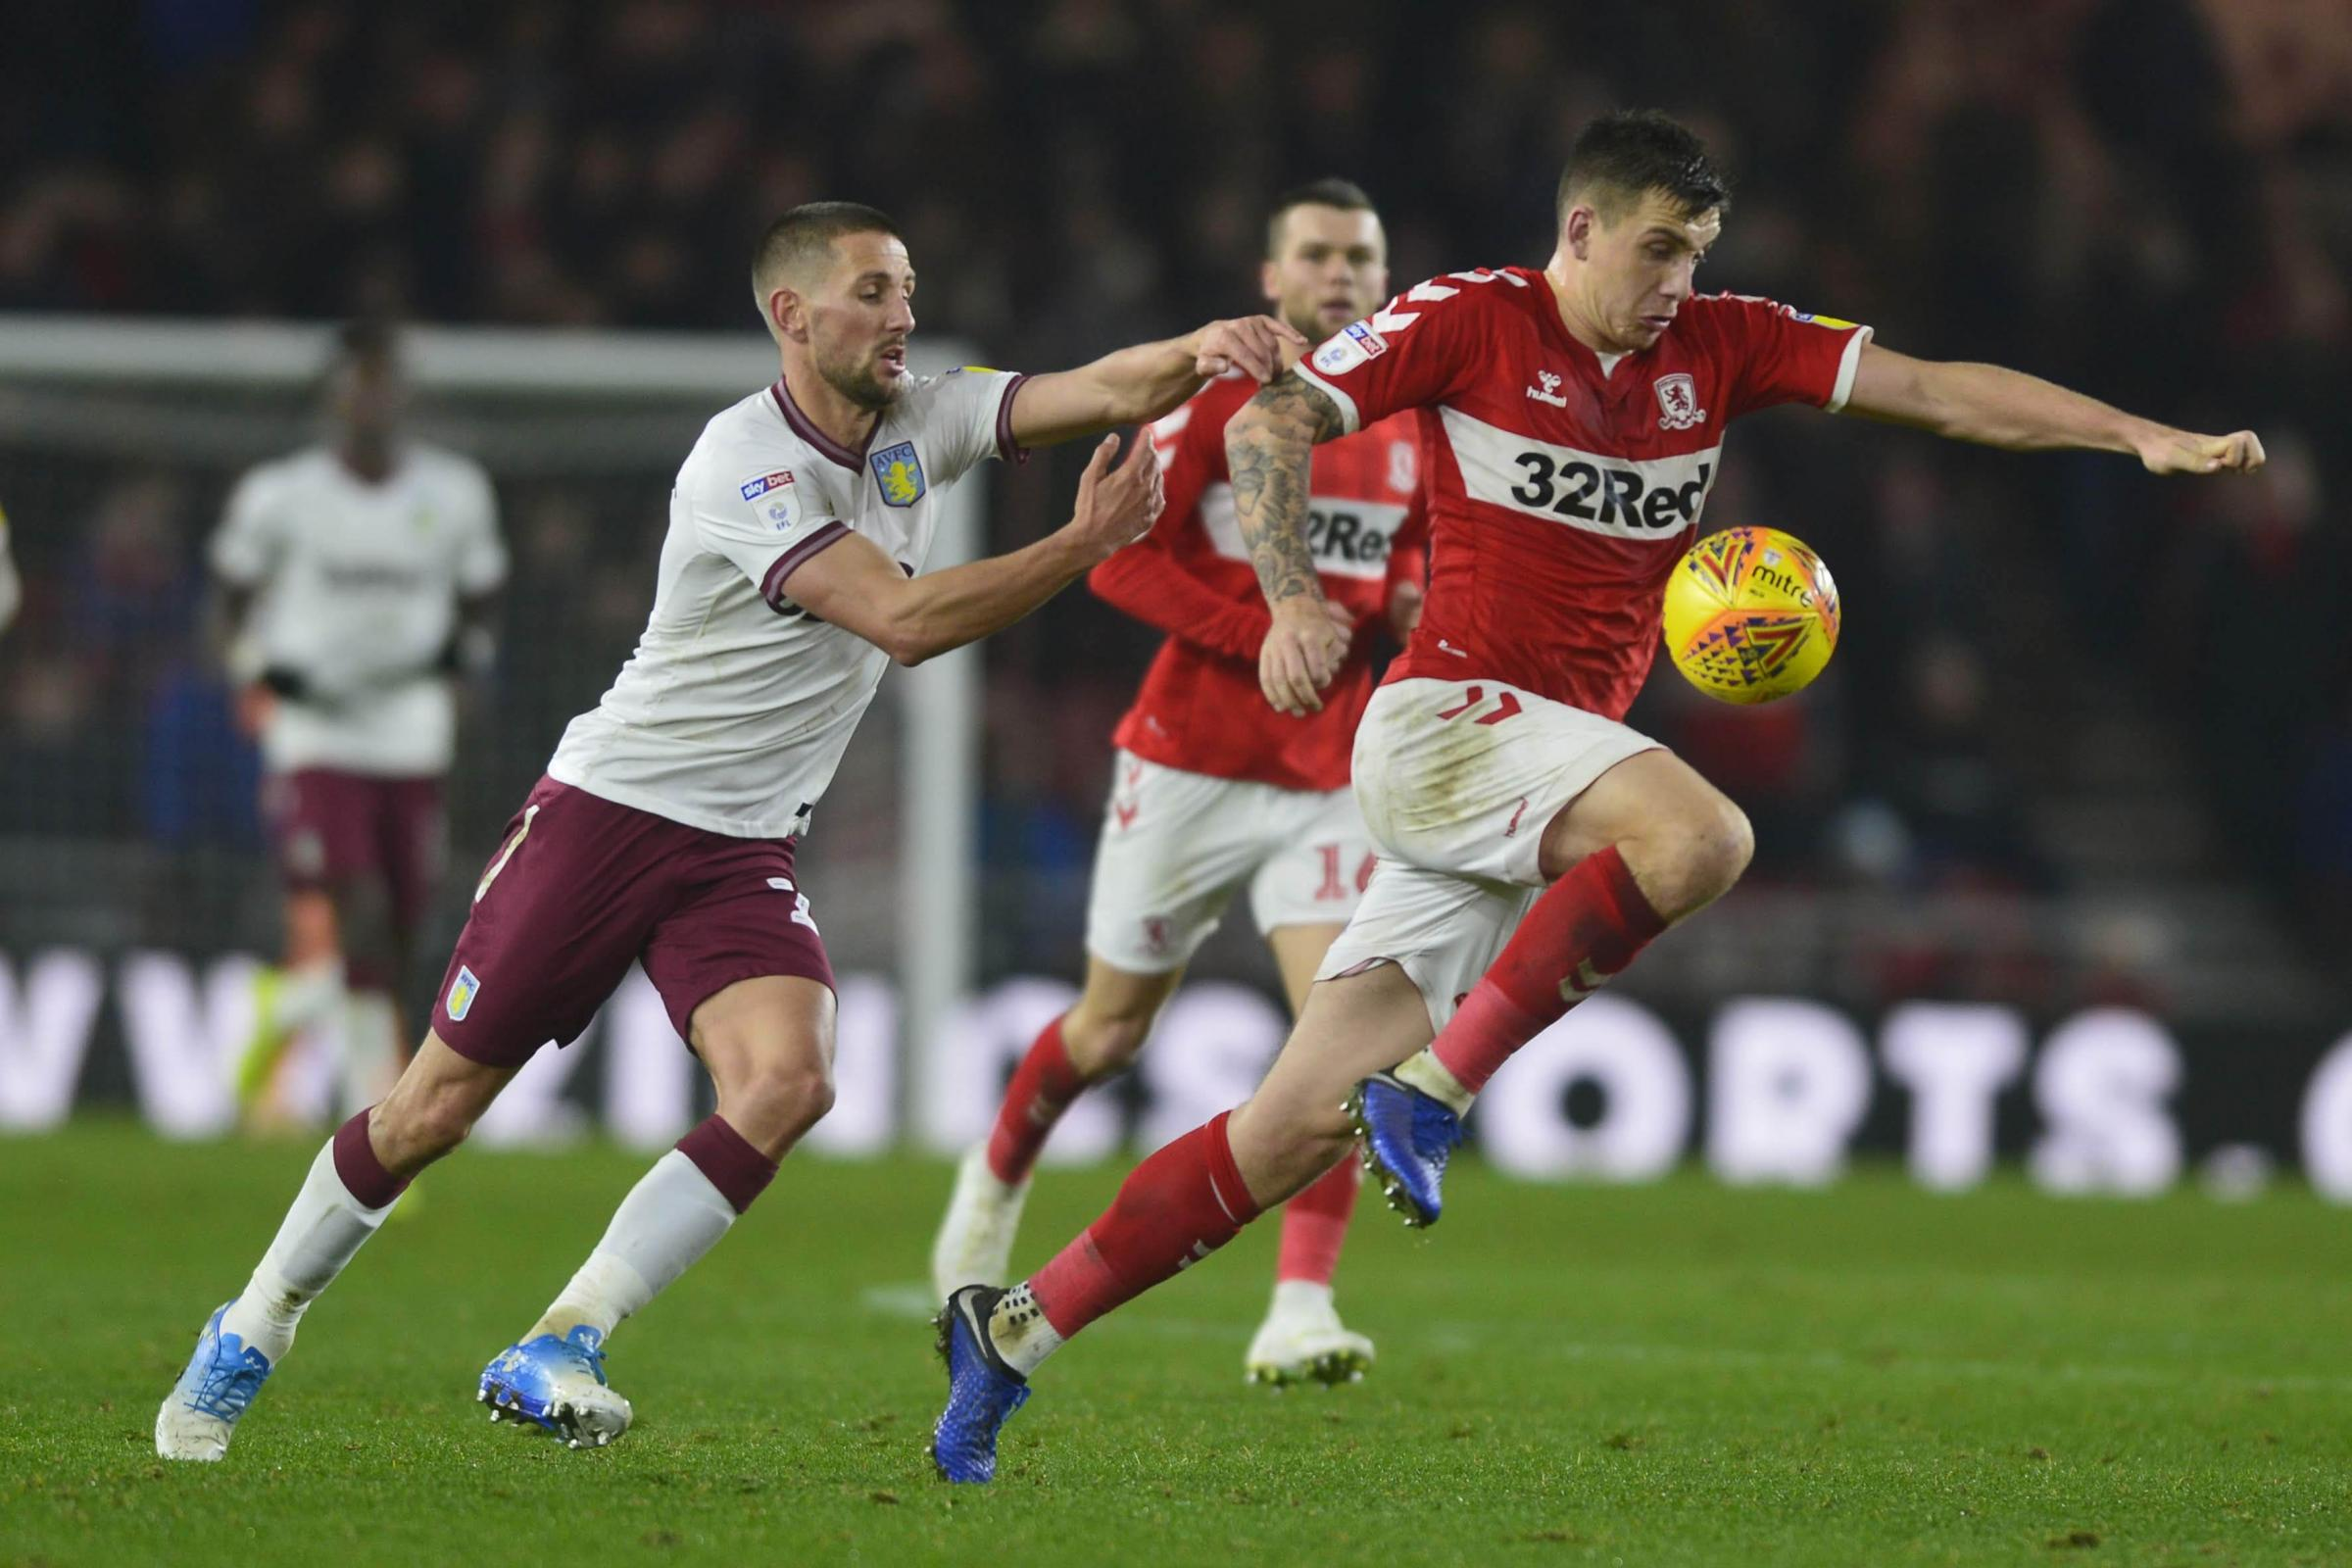 Villa show Boro exactly what quality is required